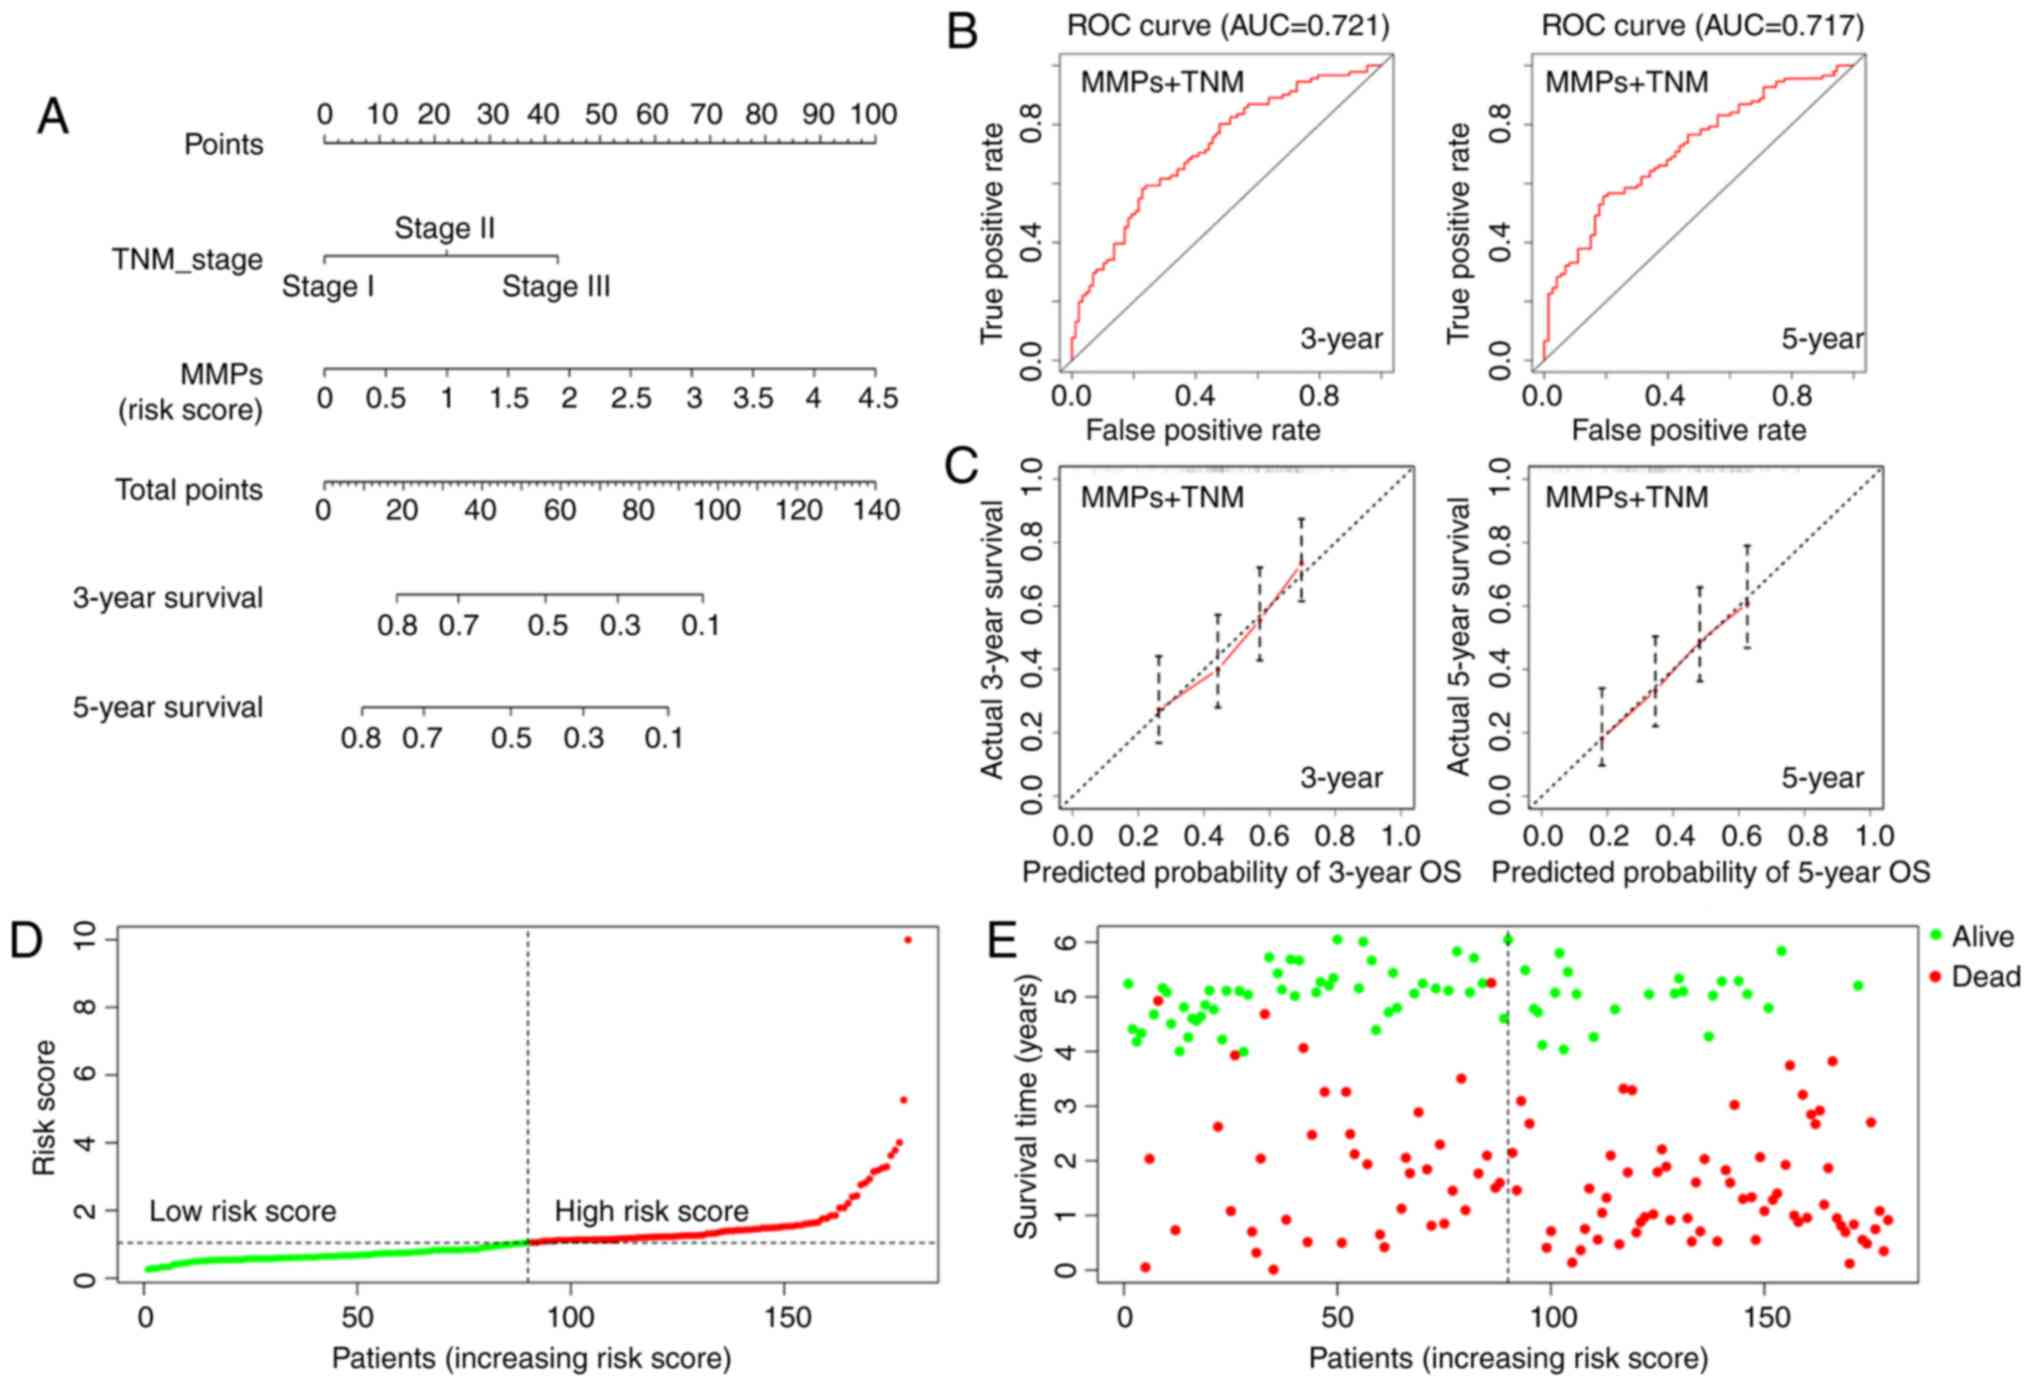 Upregulated Expression Of Mmp Family Genes Is Associated With Poor Survival In Patients With Esophageal Squamous Cell Carcinoma Via Regulation Of Proliferation And Epithelial Mesenchymal Transition